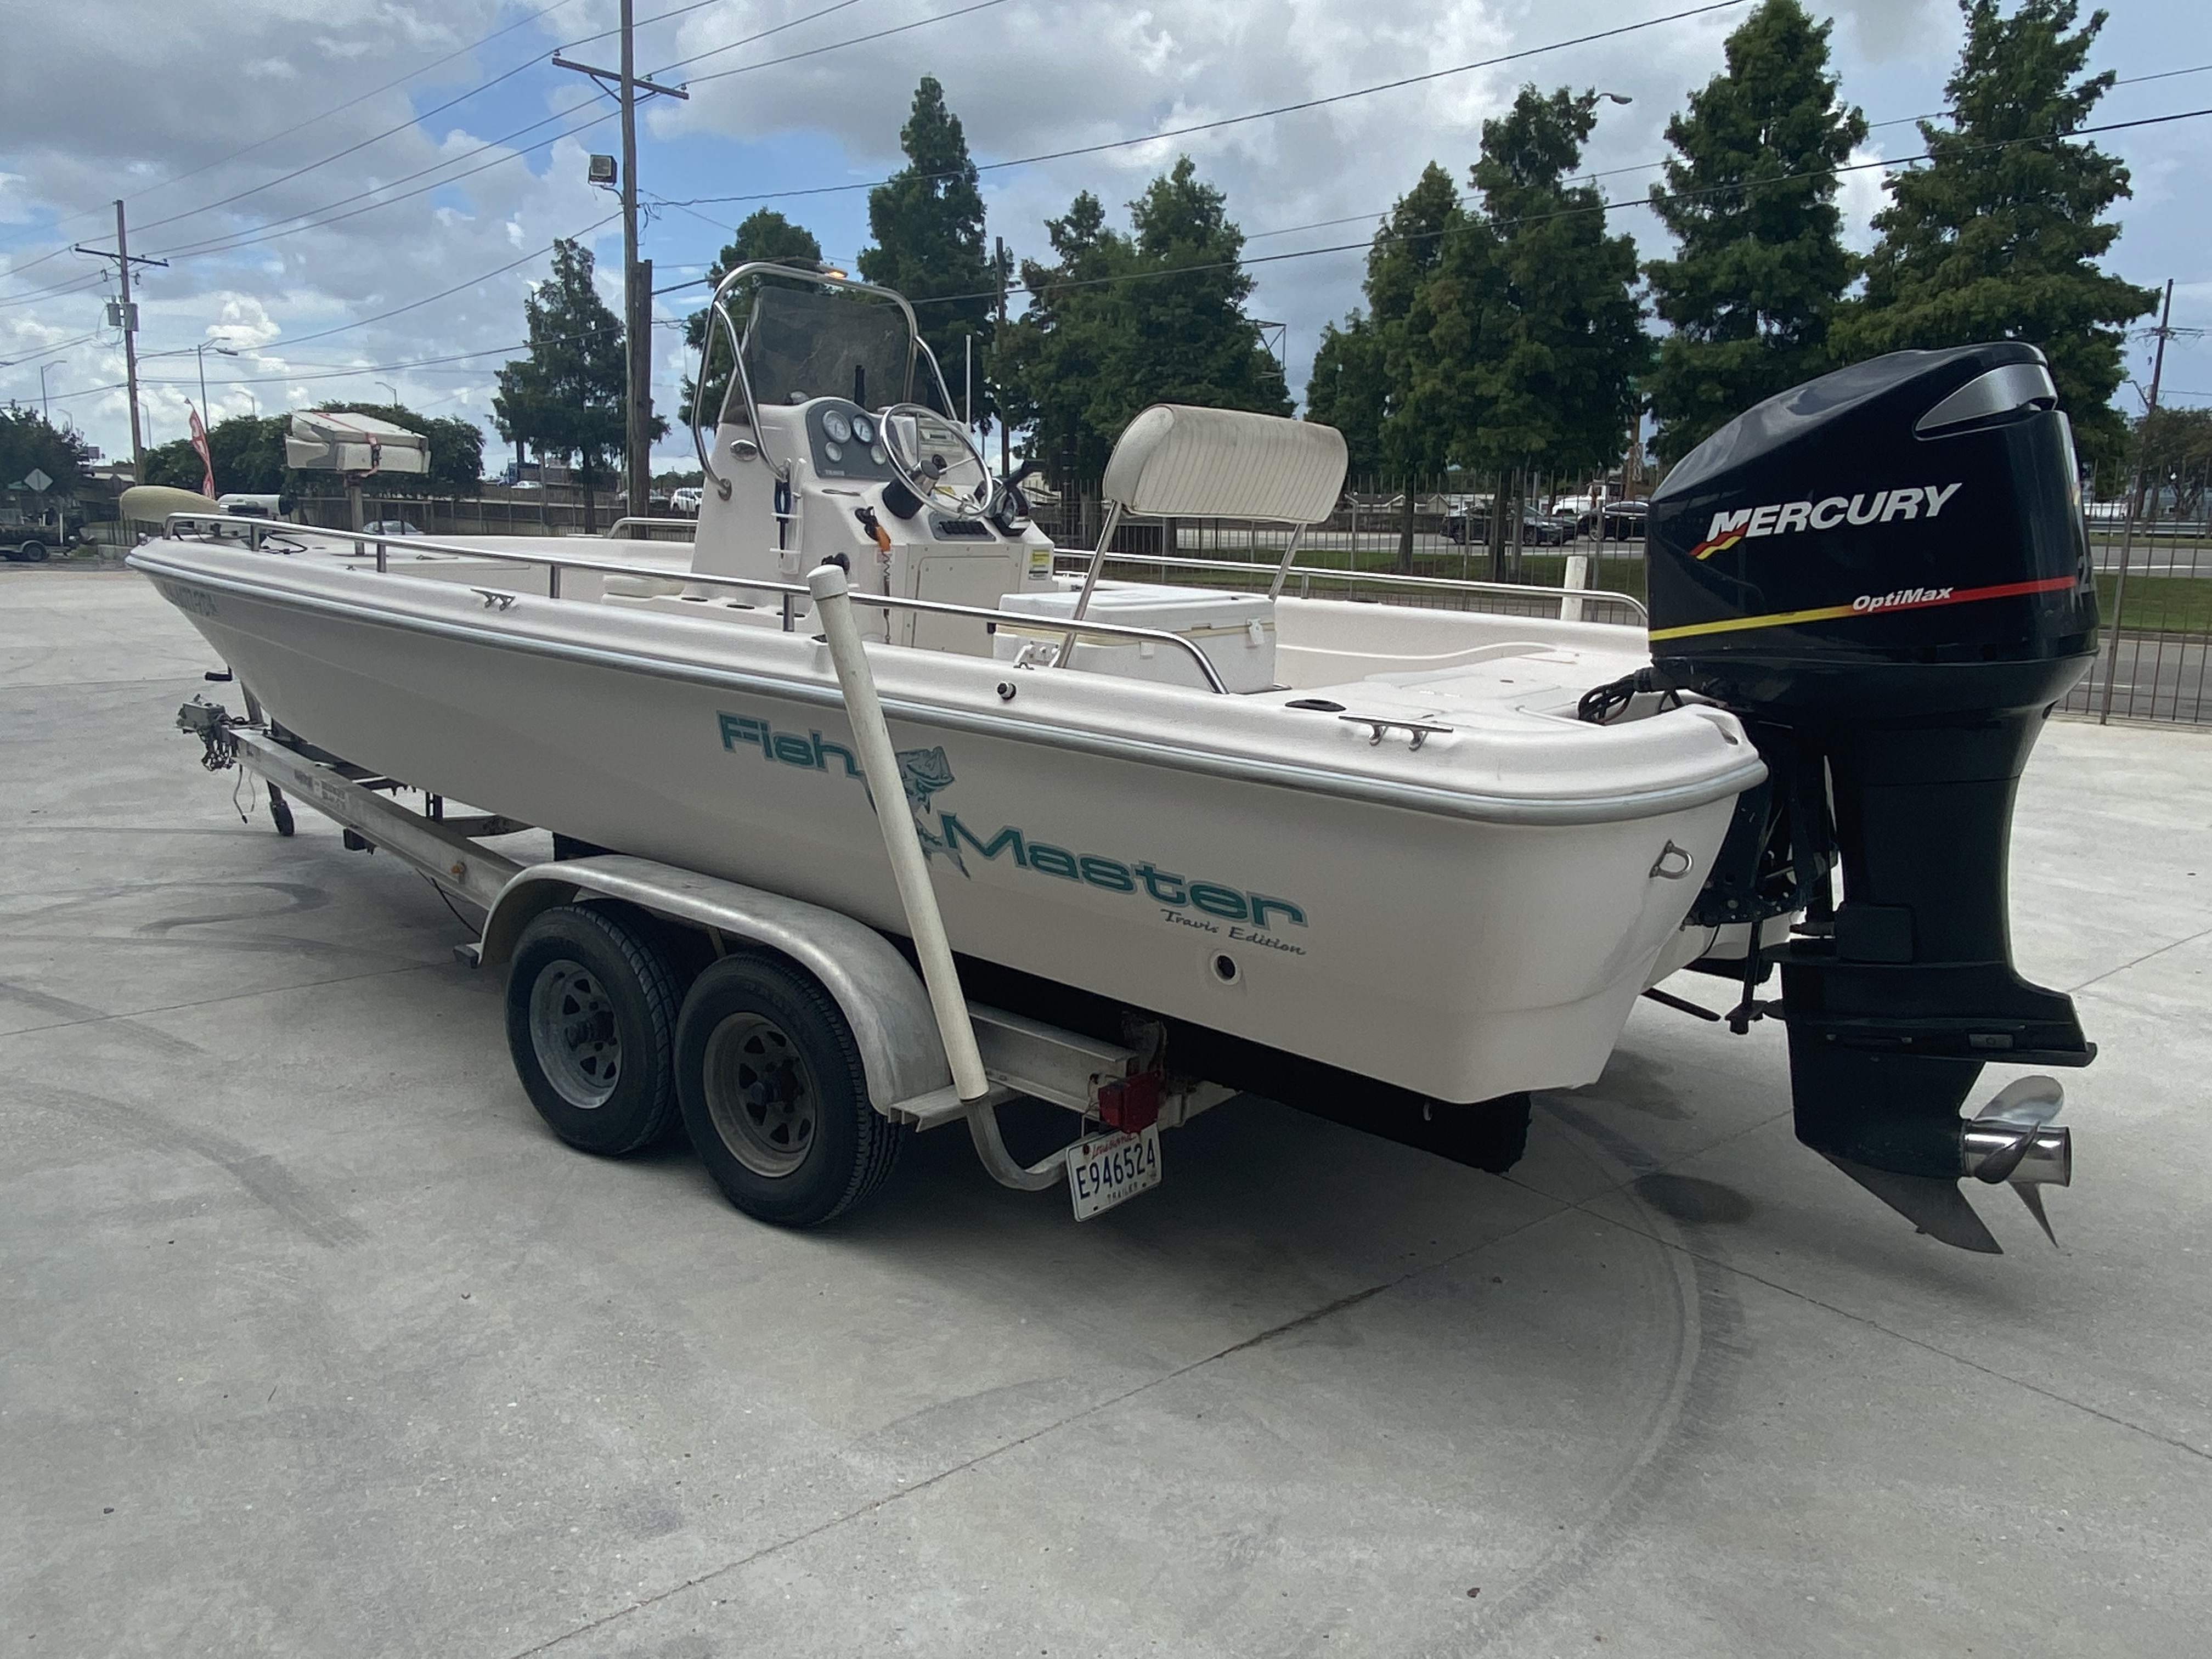 2001 Fish Master boat for sale, model of the boat is 23cc Travis Edition & Image # 5 of 11